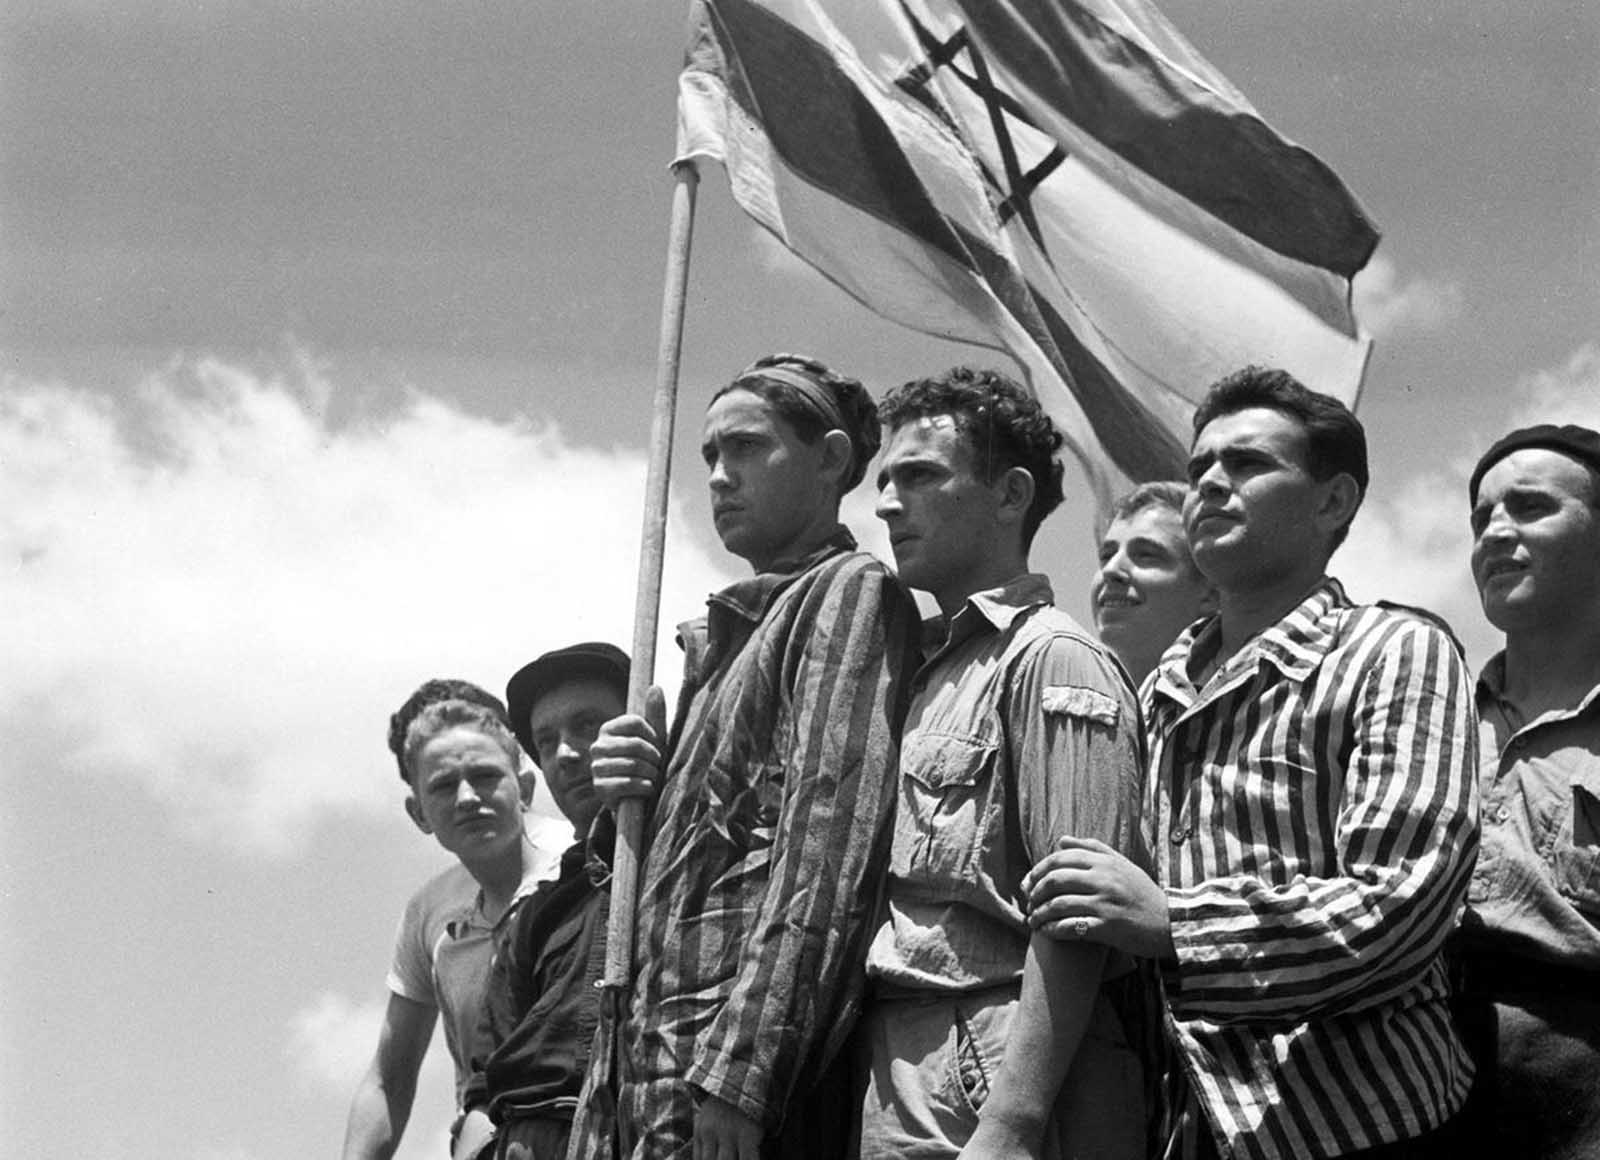 Jewish survivors of the Buchenwald Nazi concentration camp, some still in their camp clothing, stand on the deck of the refugee immigration ship Mataroa, on July 15, 1945 at Haifa port, during the British Mandate of Palestine, in what would later become the State of Israel. During World War II, millions of Jews were fleeing Germany and its occupied territories, many attempting to enter the British Mandate of Palestine, despite tight restrictions on Jewish immigration established by the British in 1939. Many of these would-be immigrants were caught and rounded up into detention camps. In 1947, Britain announced plans to withdraw from the territory, and the United Nations approved the Partition Plan for Palestine, establishing a Jewish and a Palestinian state in the country. On May 14, 1948, Israel declared independence and was immediately attacked by neighboring Arab states, beginning the Arab-Israeli conflict which continues to this day.